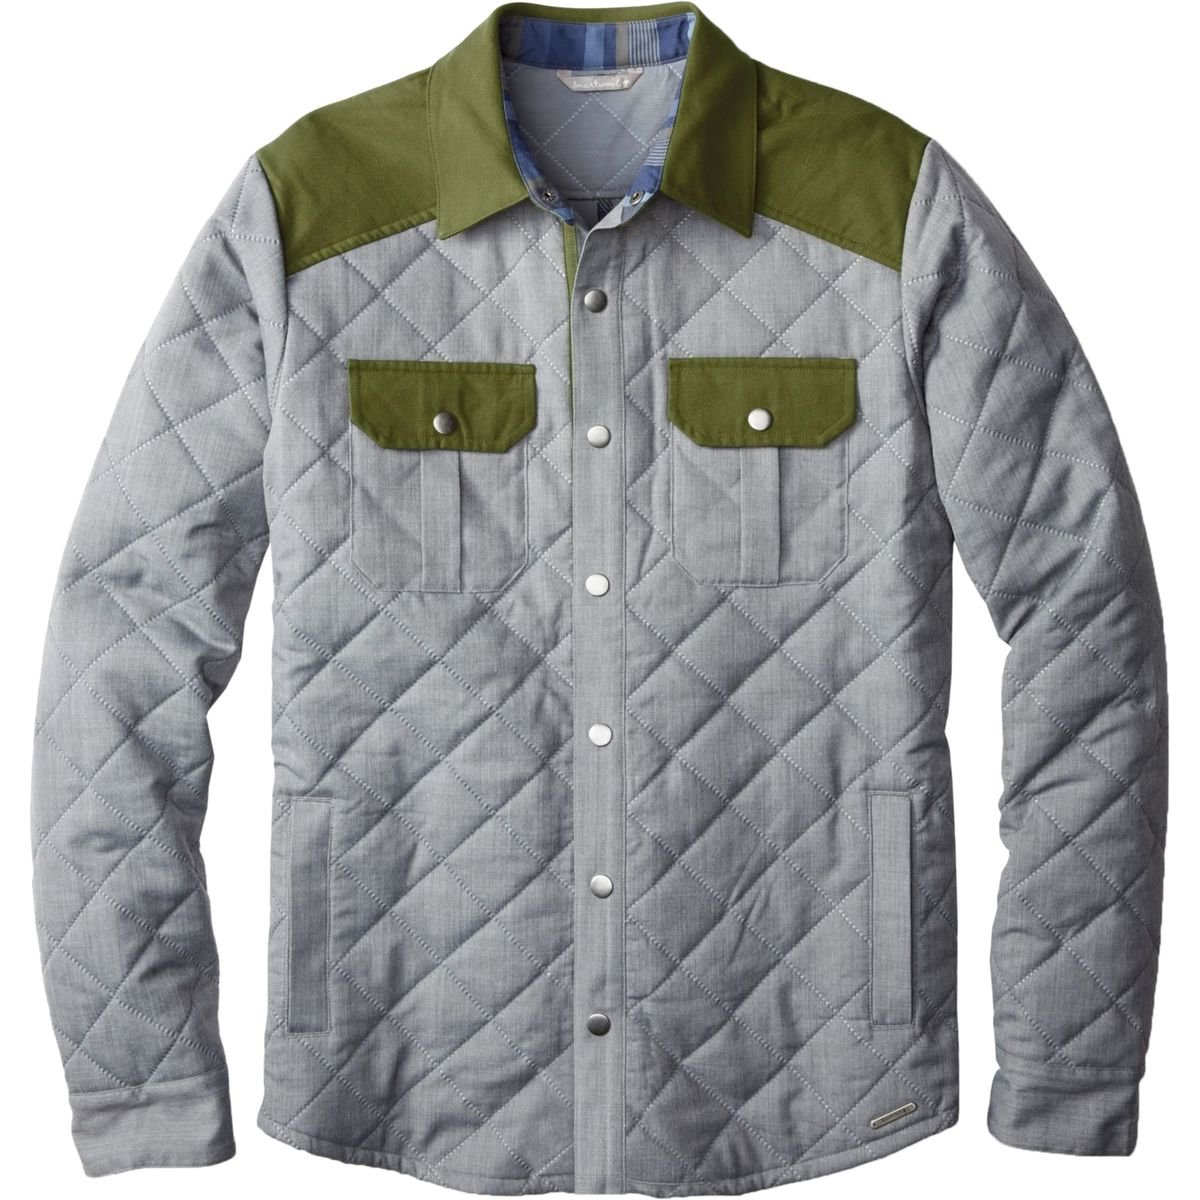 Amazon.com: Smartwool Mens Summit County Quilted Shirt Jacket ... : mens quilted shirt - Adamdwight.com